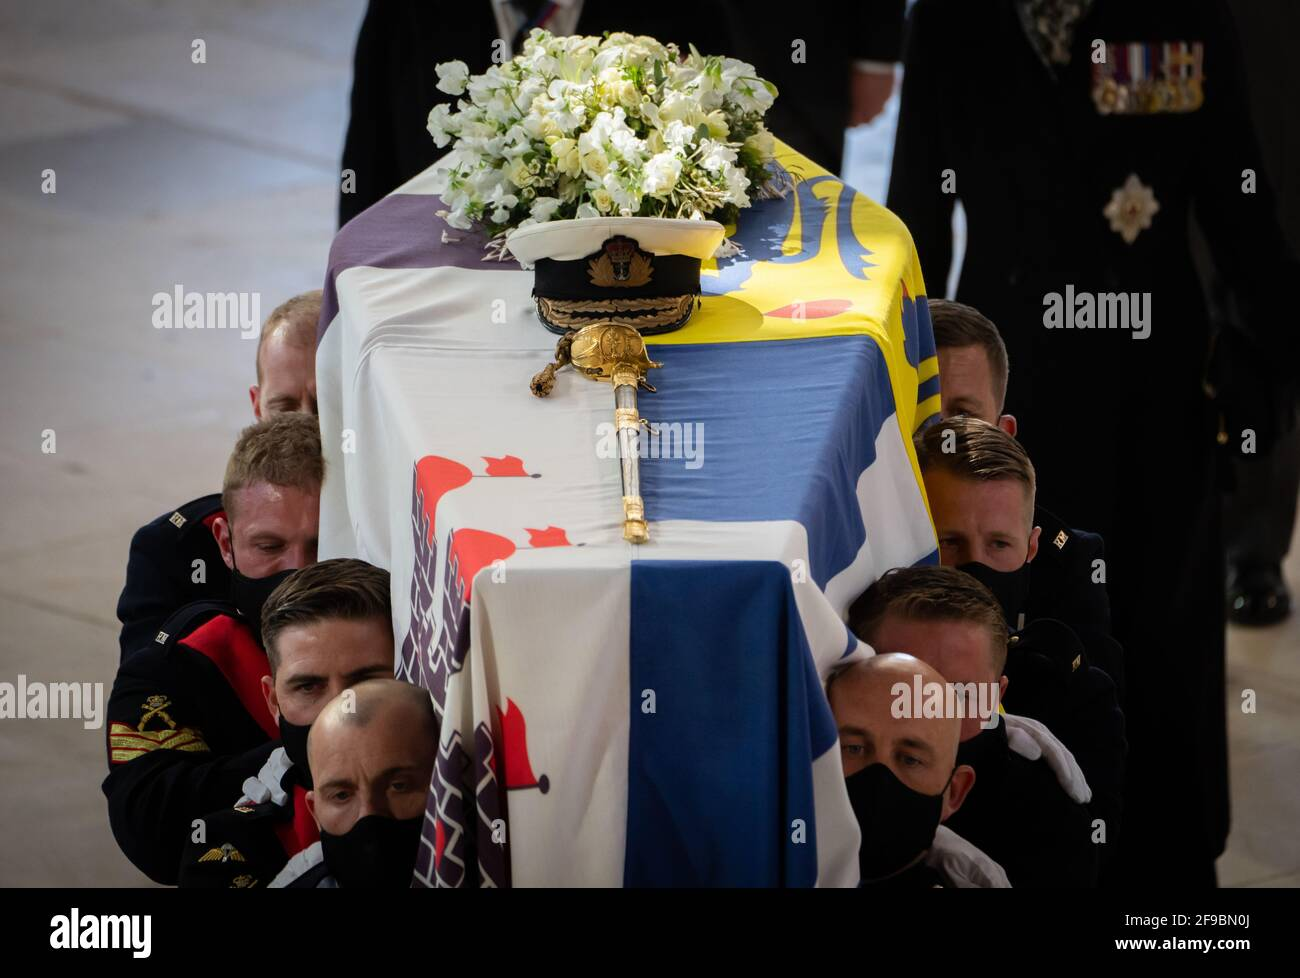 Pall Bearers carrying the coffin during the funeral of the Duke of Edinburgh in St George's Chapel, Windsor Castle, Berkshire. Picture date: Saturday April 17, 2021. Stock Photo